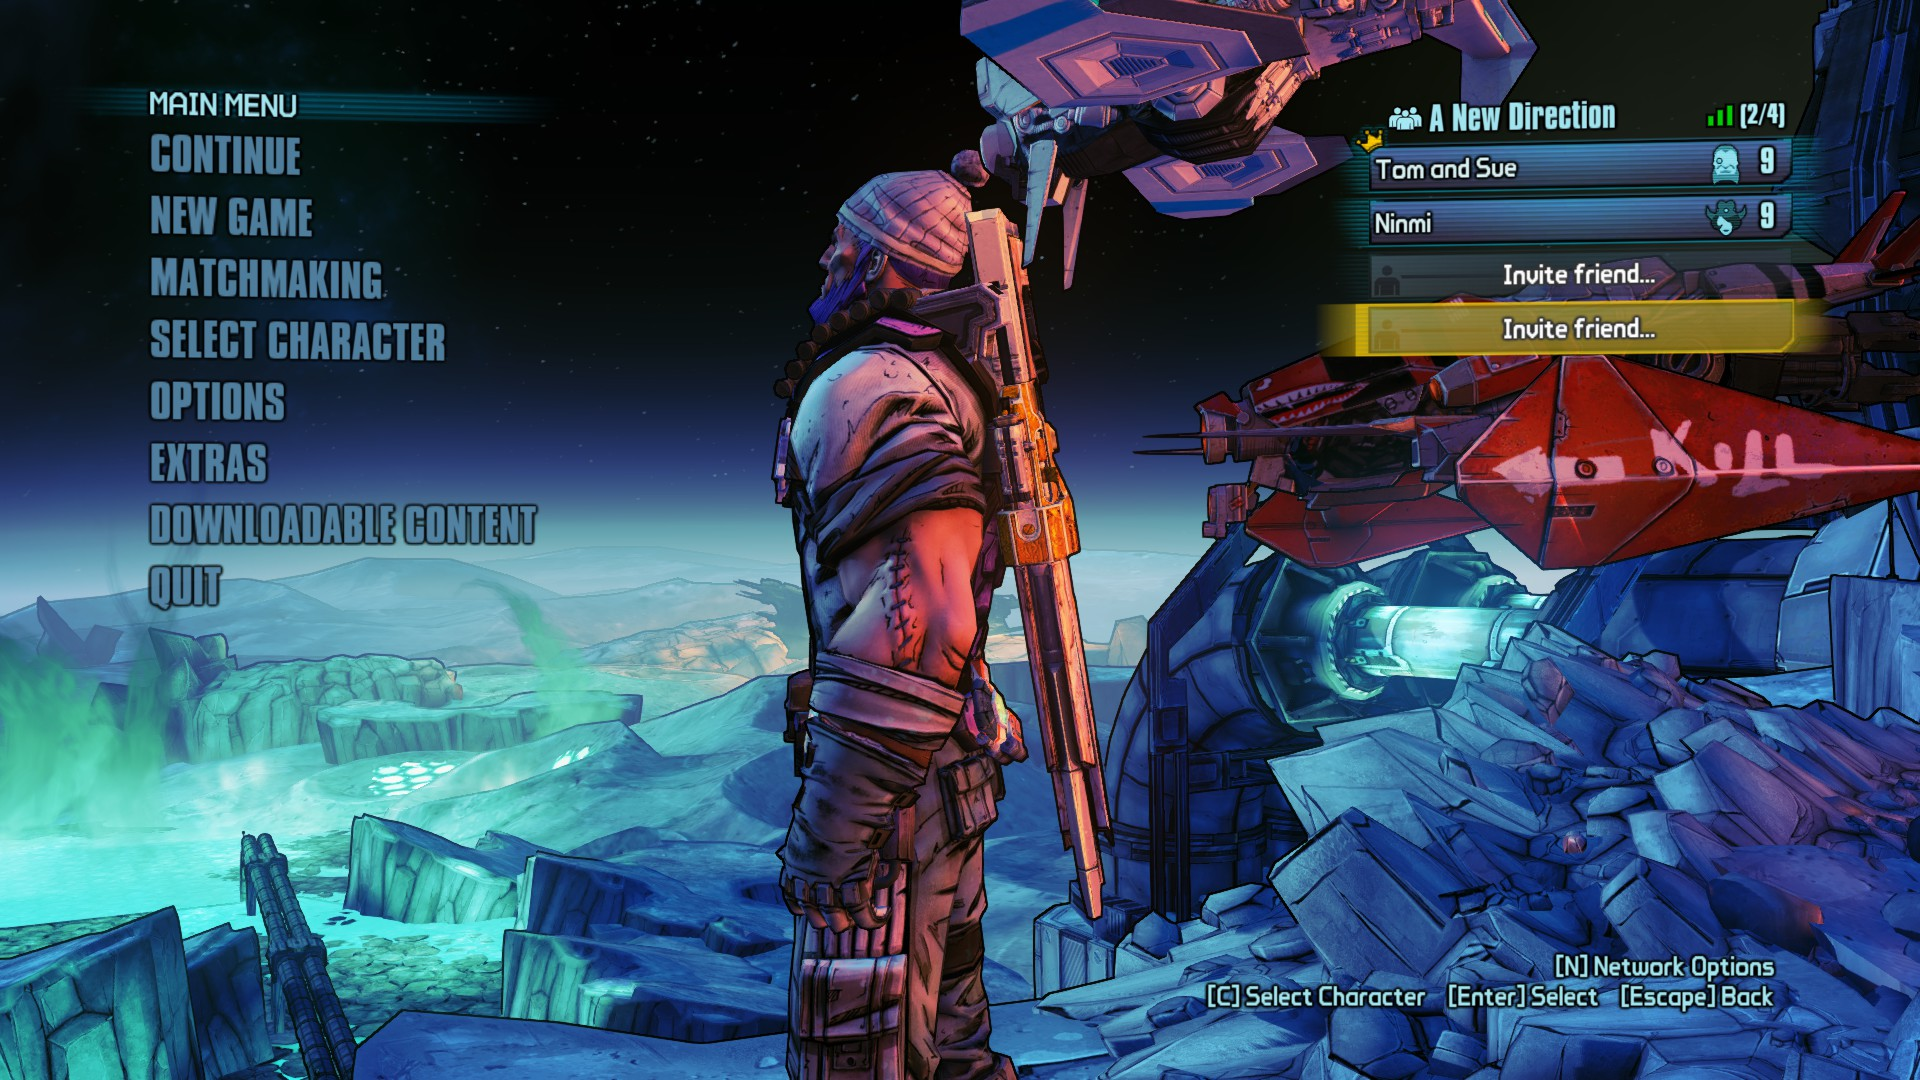 Matchmaking borderlands pre sequel